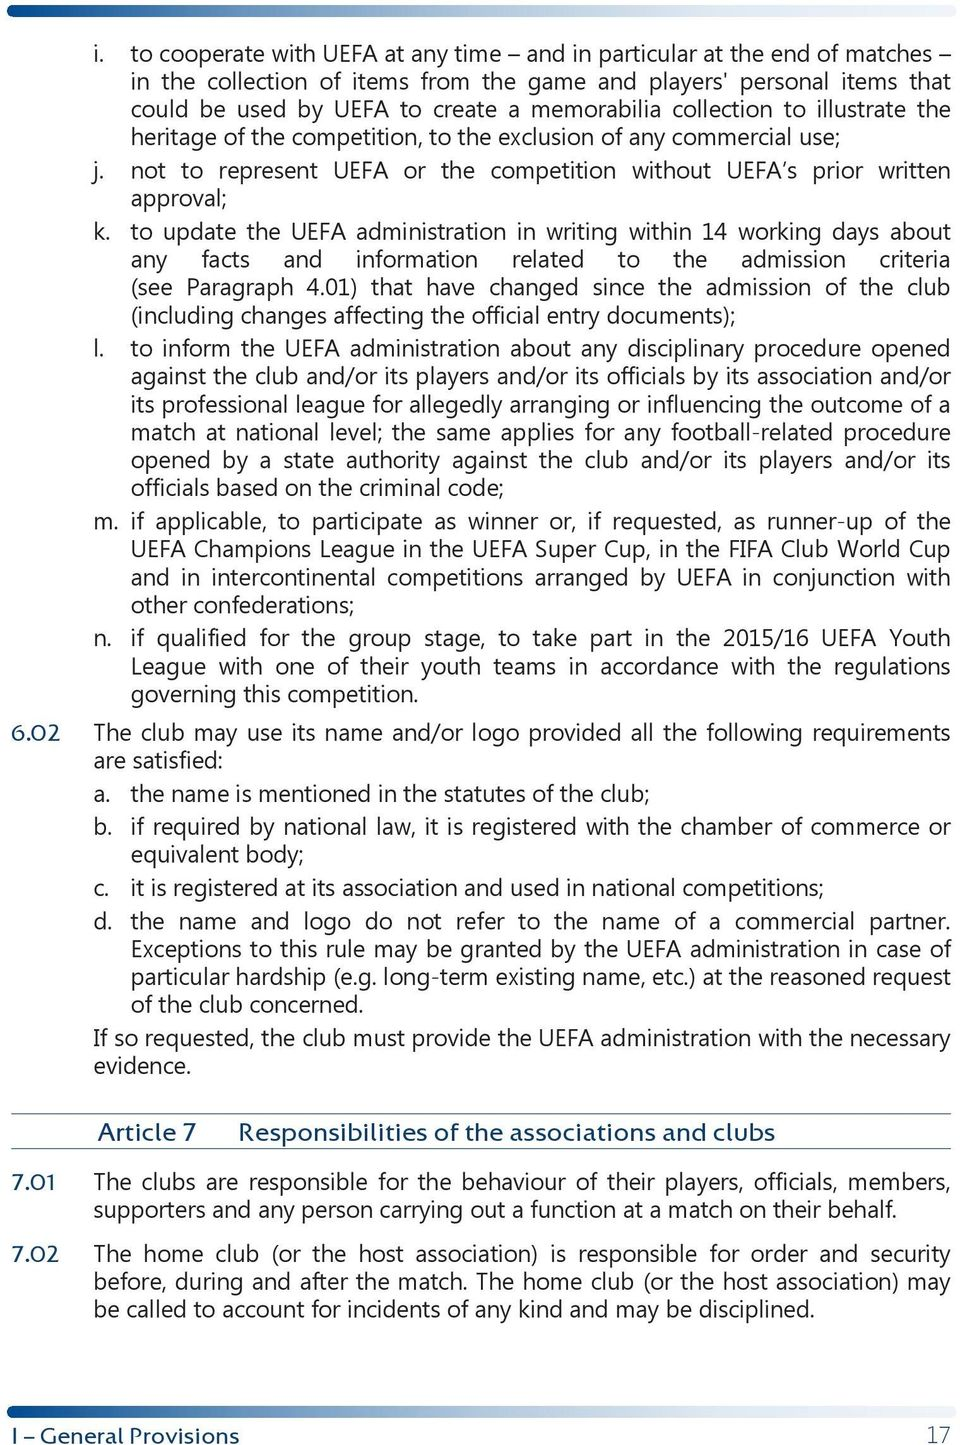 to update the UEFA administration in writing within 14 working days about any facts and information related to the admission criteria (see Paragraph 4.